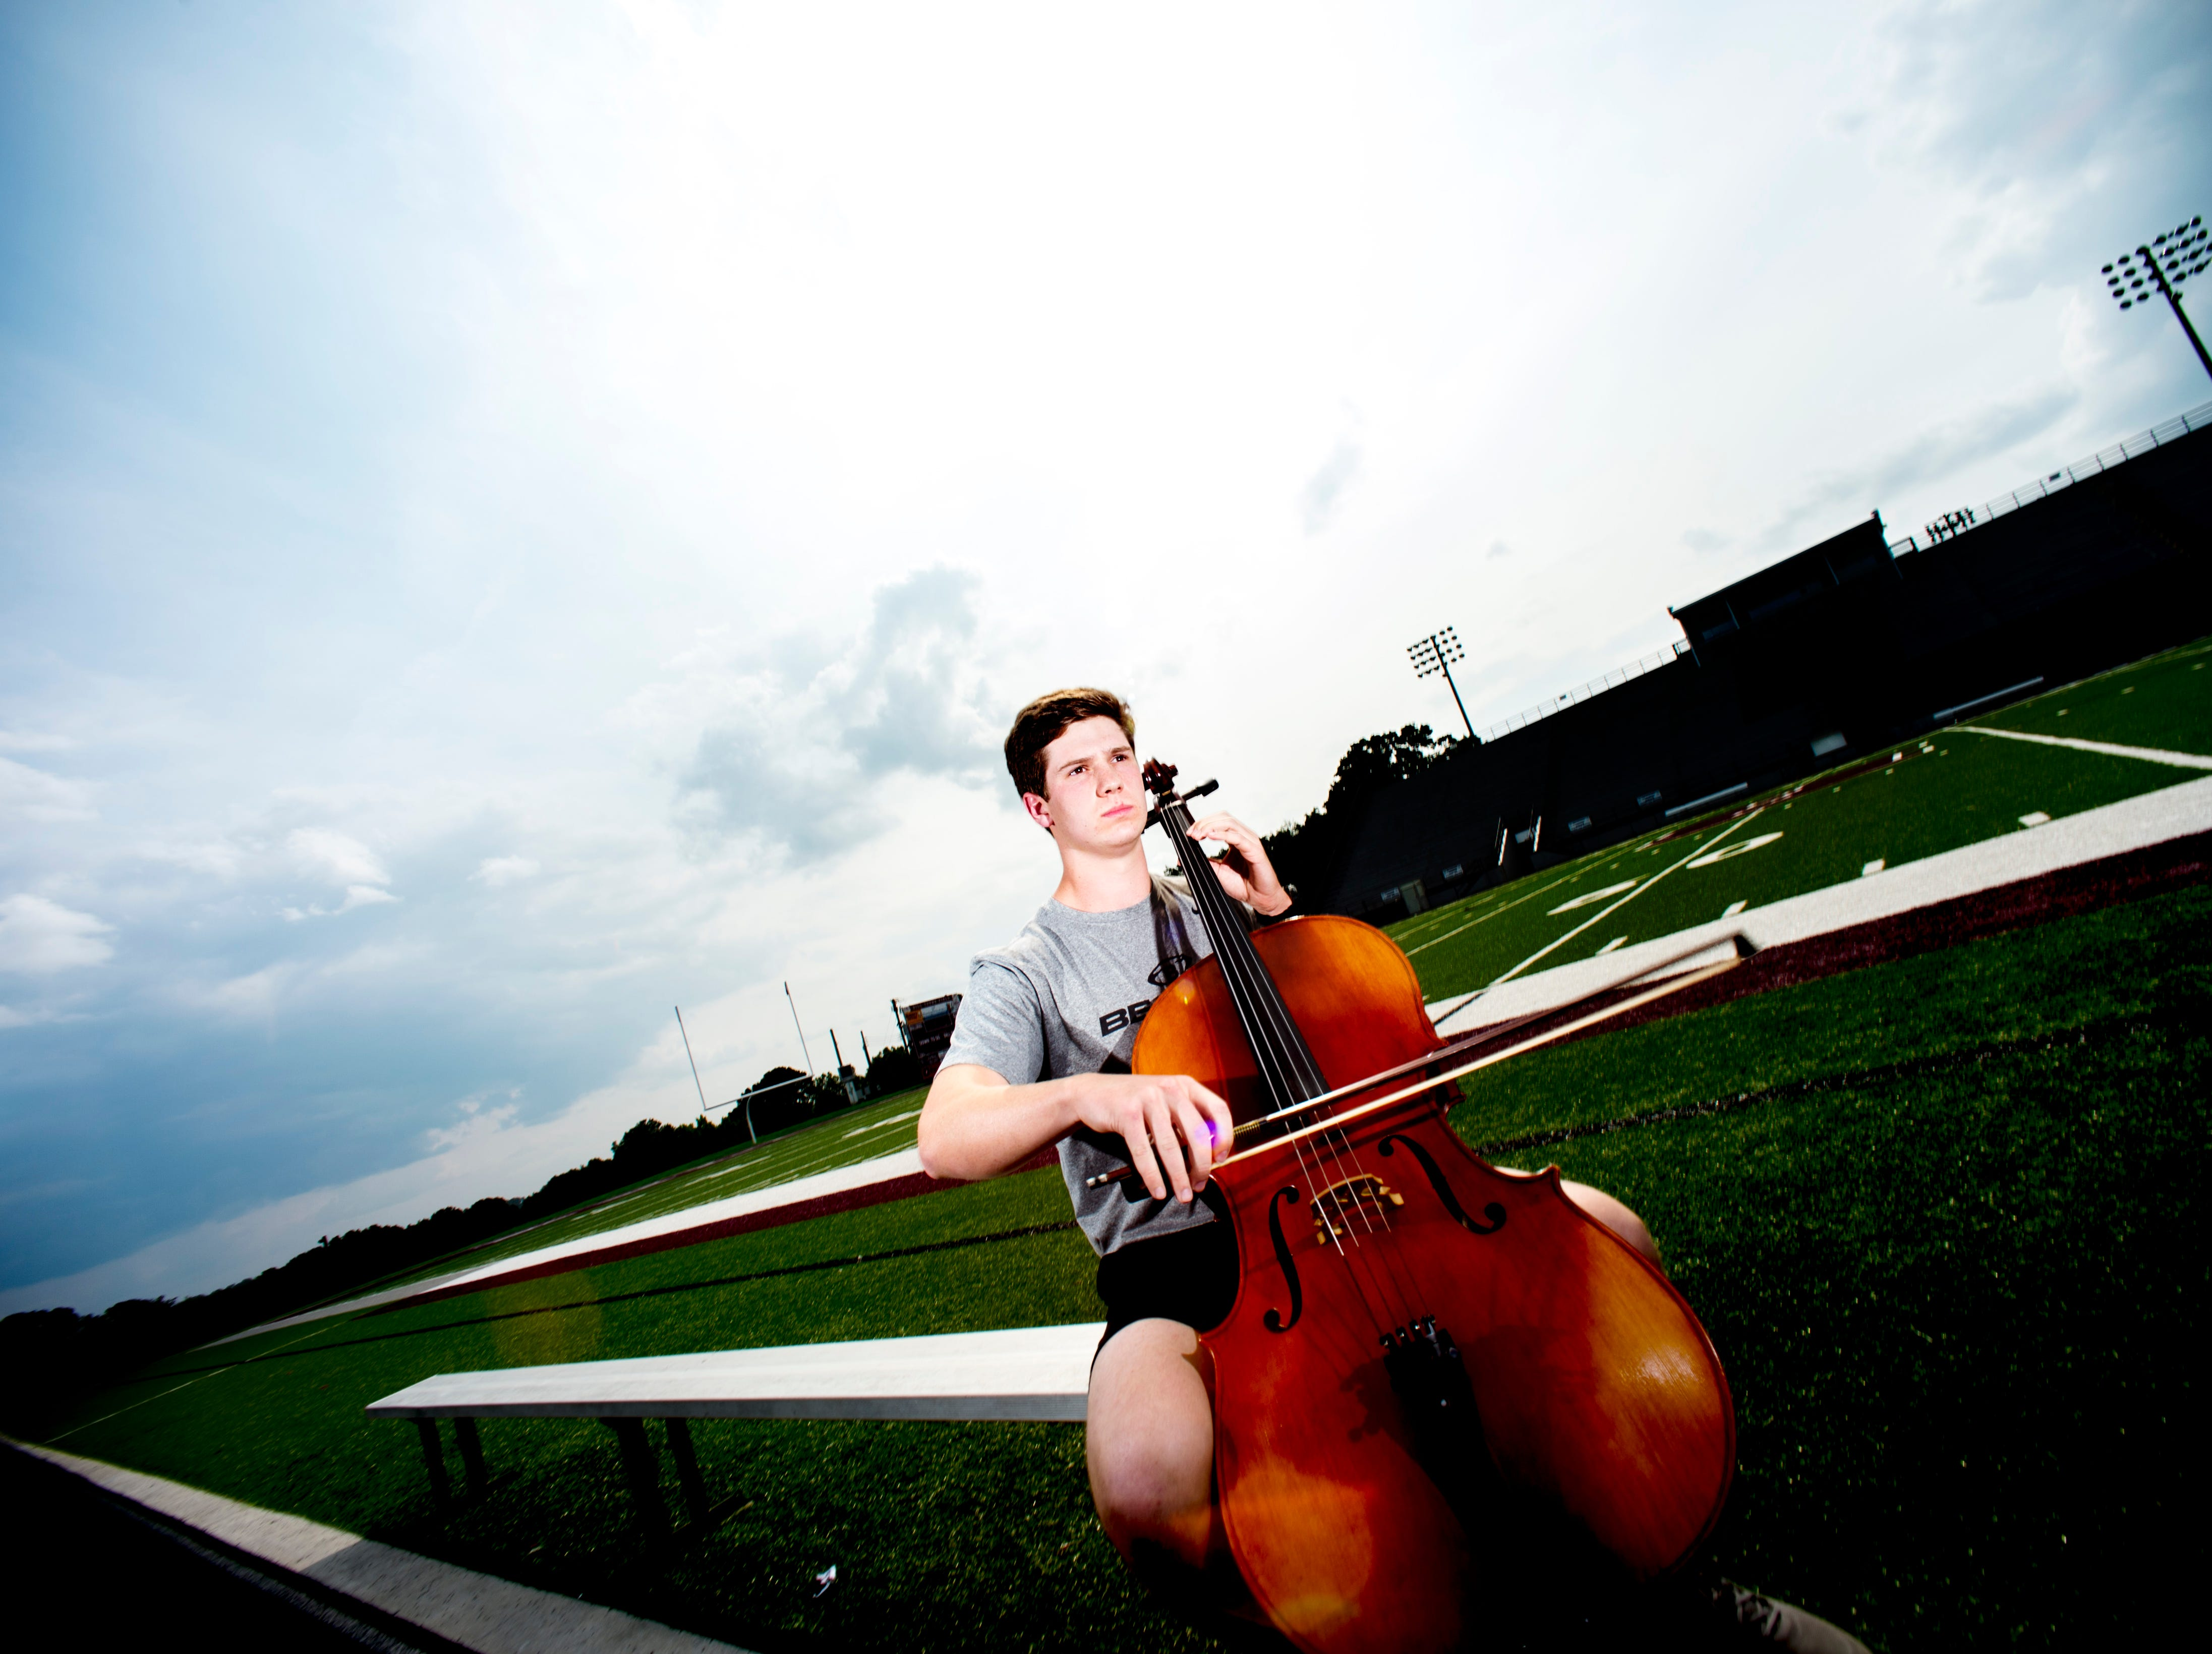 Bearden senior linebacker and orchestra member Mac Chandler plays his cello on the football field at Bearden High School in Knoxville, Tennessee on Wednesday, August 22, 2018.